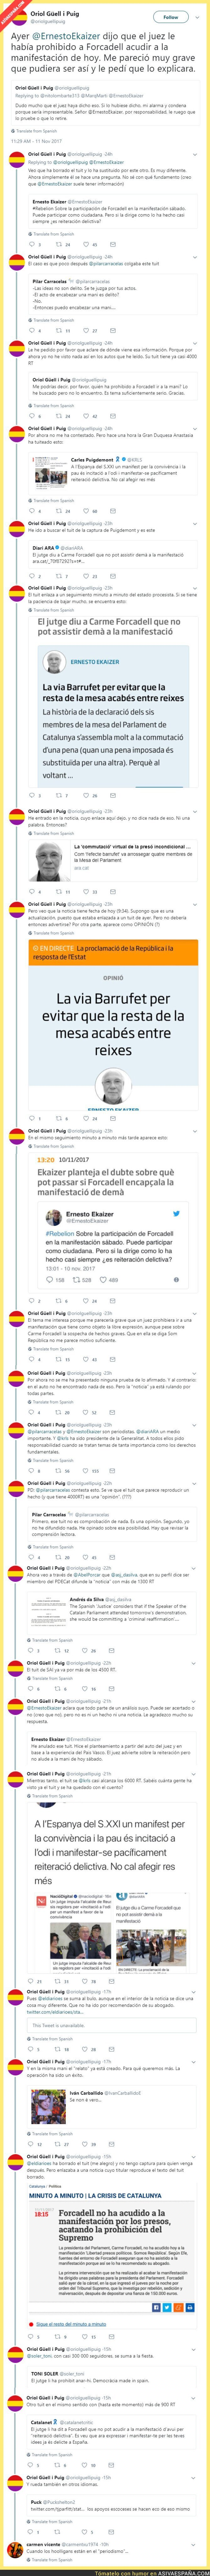 78677 - Las fake news rodean a Forcadell